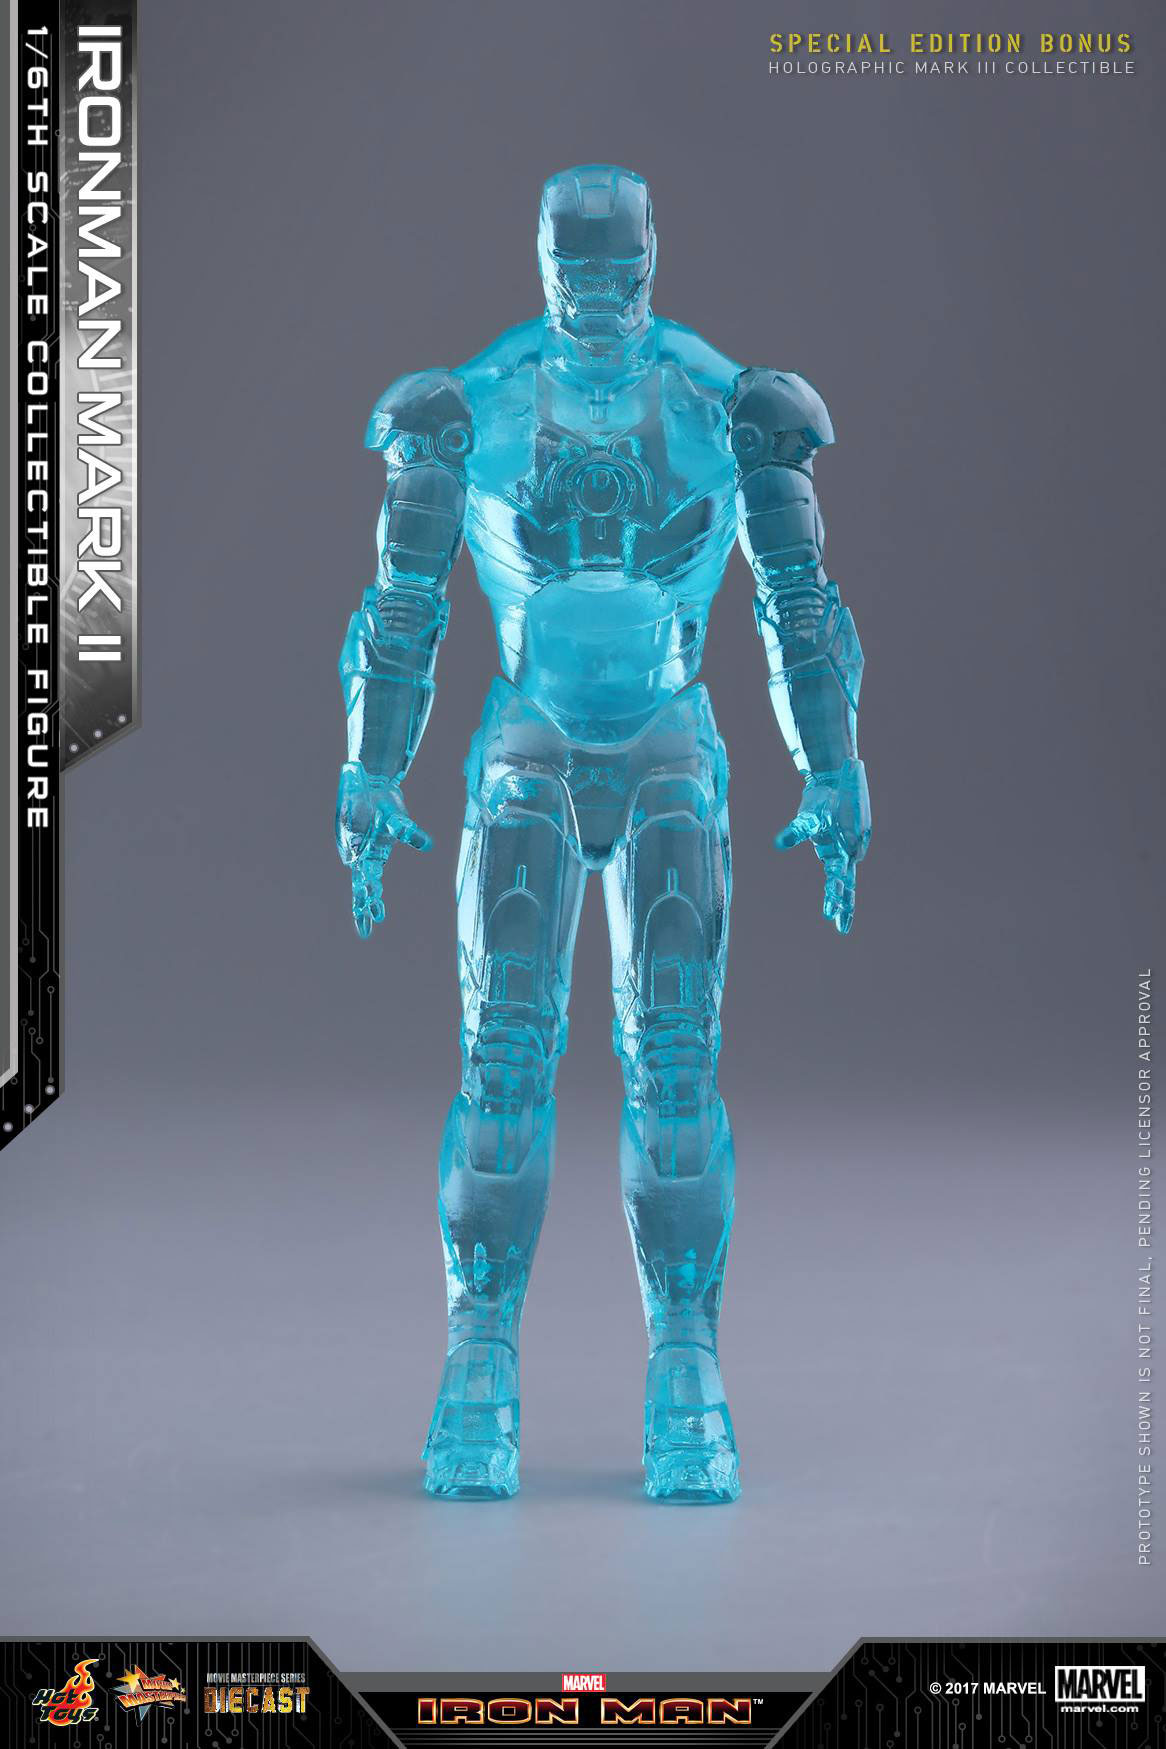 iron-man-mark-2-diecast-silver-hot-toys-figure-11